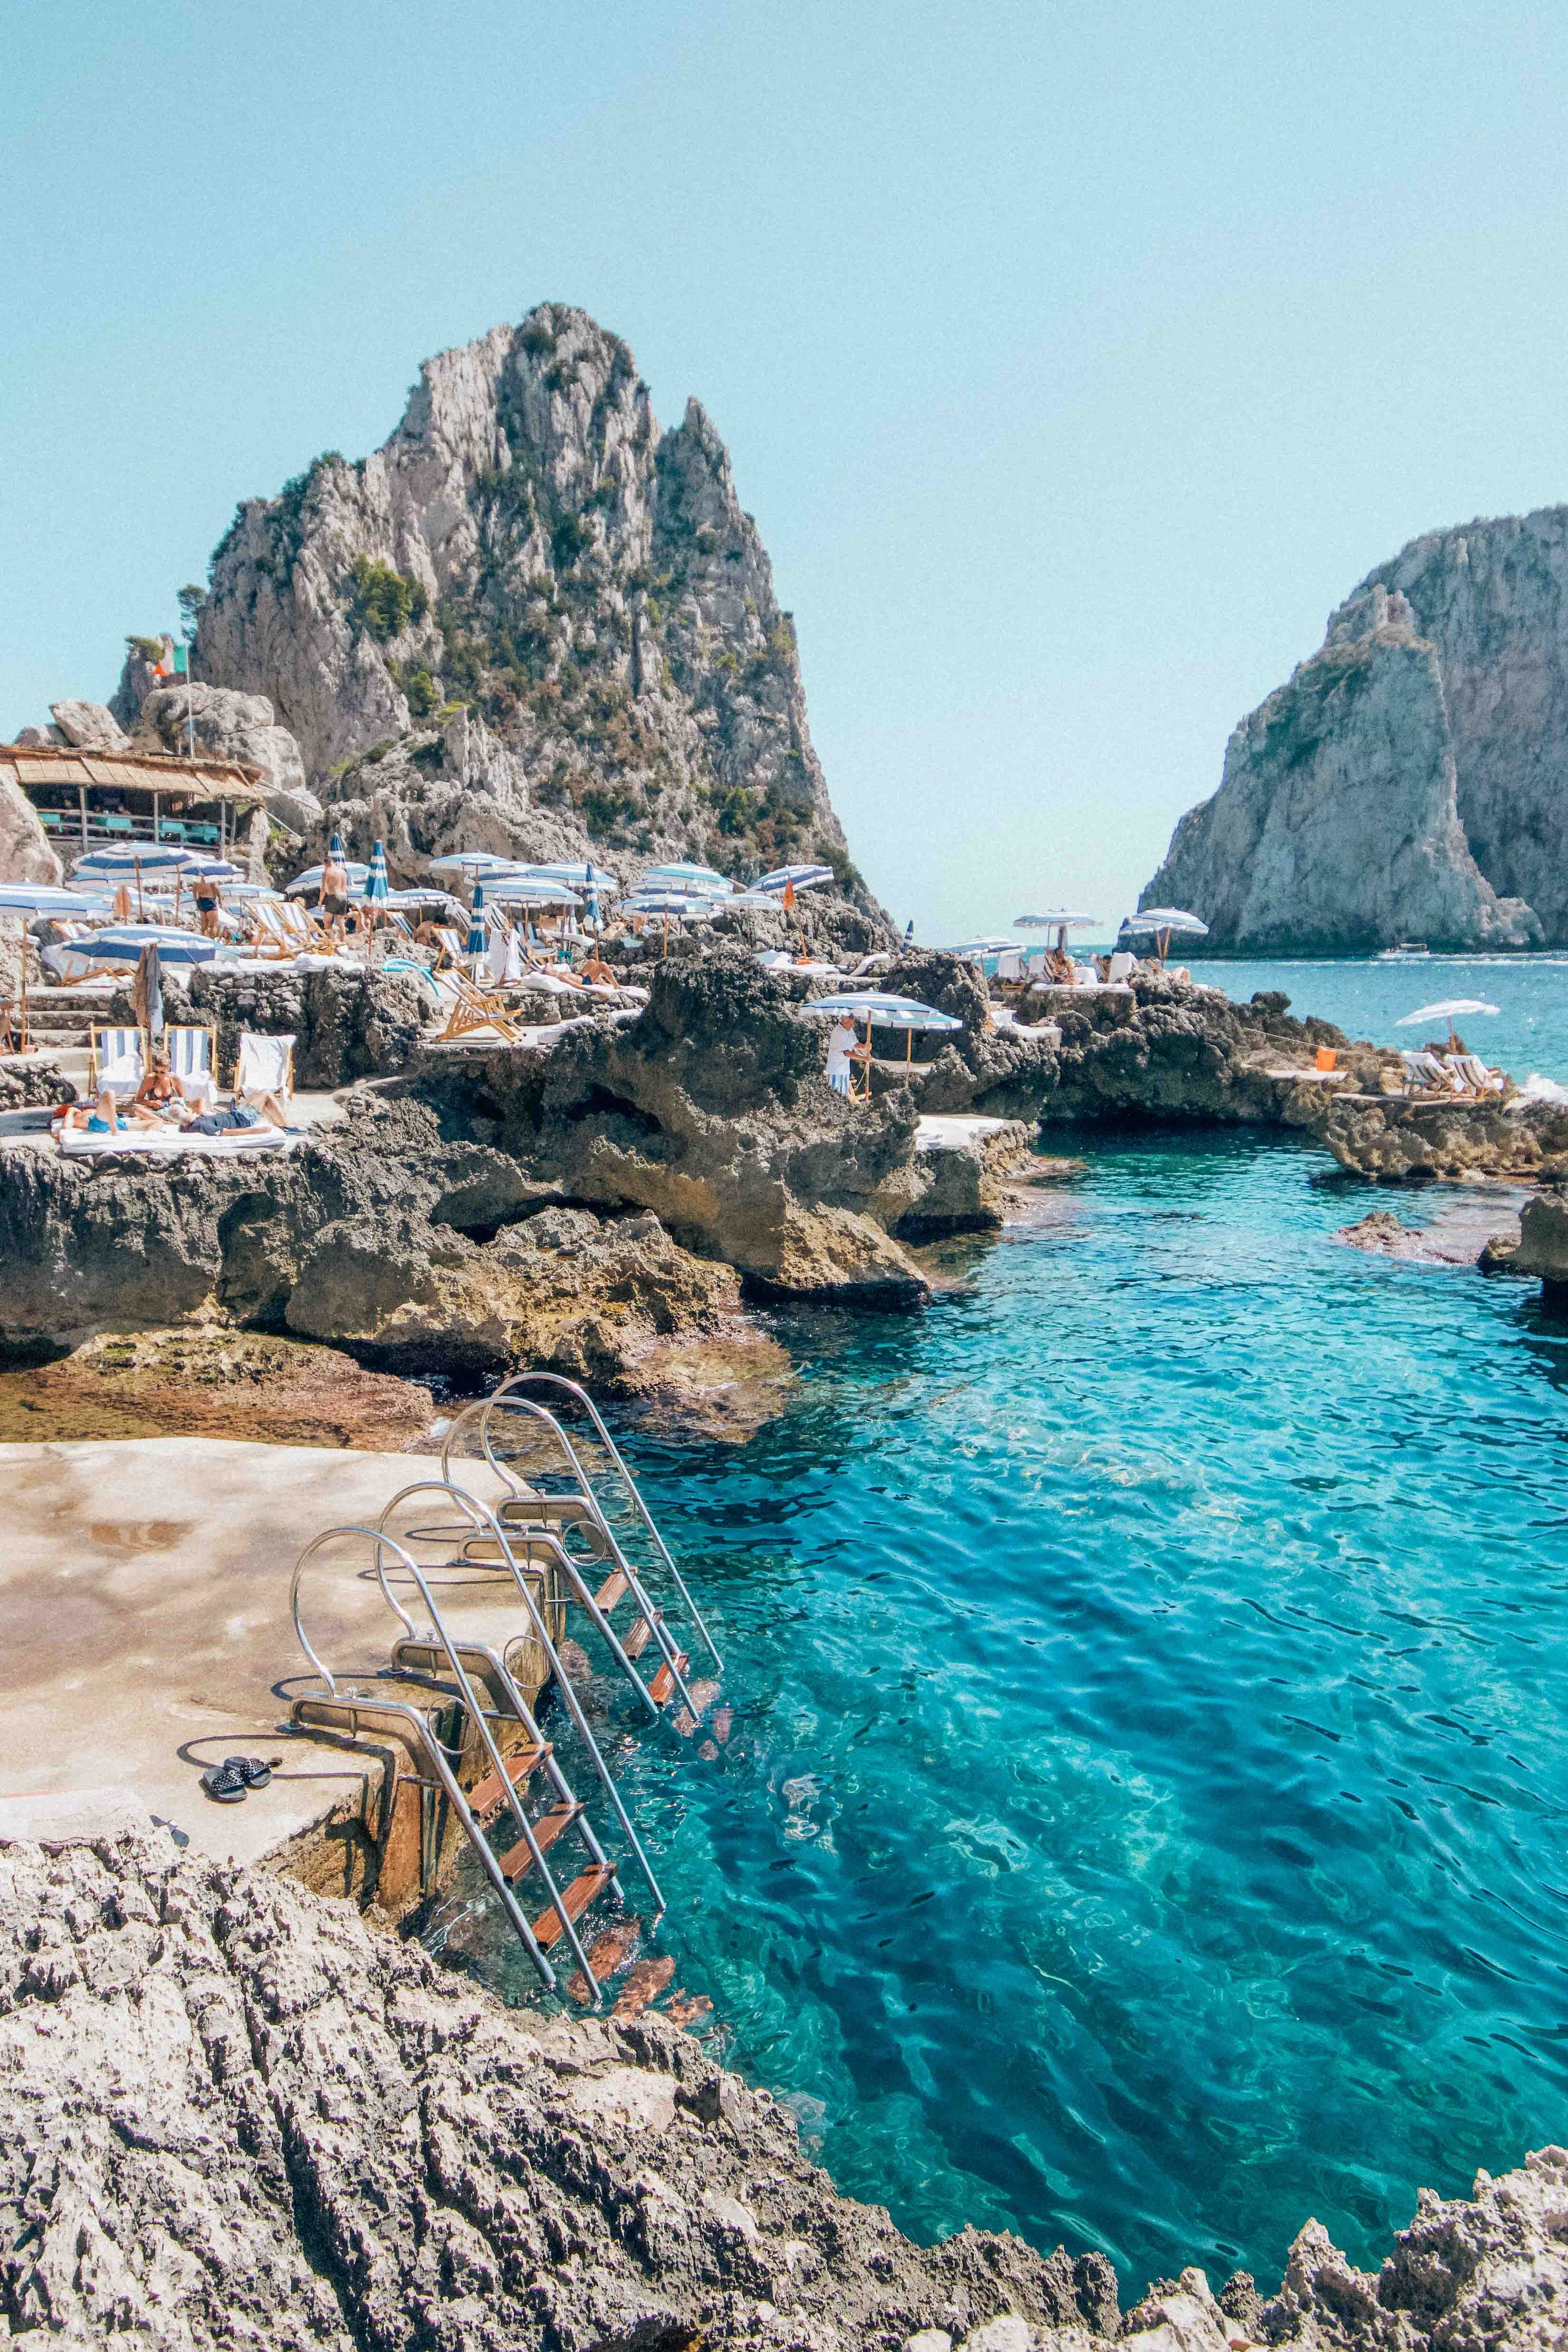 If You're Waiting for a Sign to Plan a Trip to Capri, This Is It | You'll be hard-pressed to find a better vacation spot than Capri. Famous for its stylish shopping scene, Michelin-starred cuisine and, of course, that unbelievable blue sea, the Italian island is everything a glamorous getaway should be. | Photo: Sarah Gordon